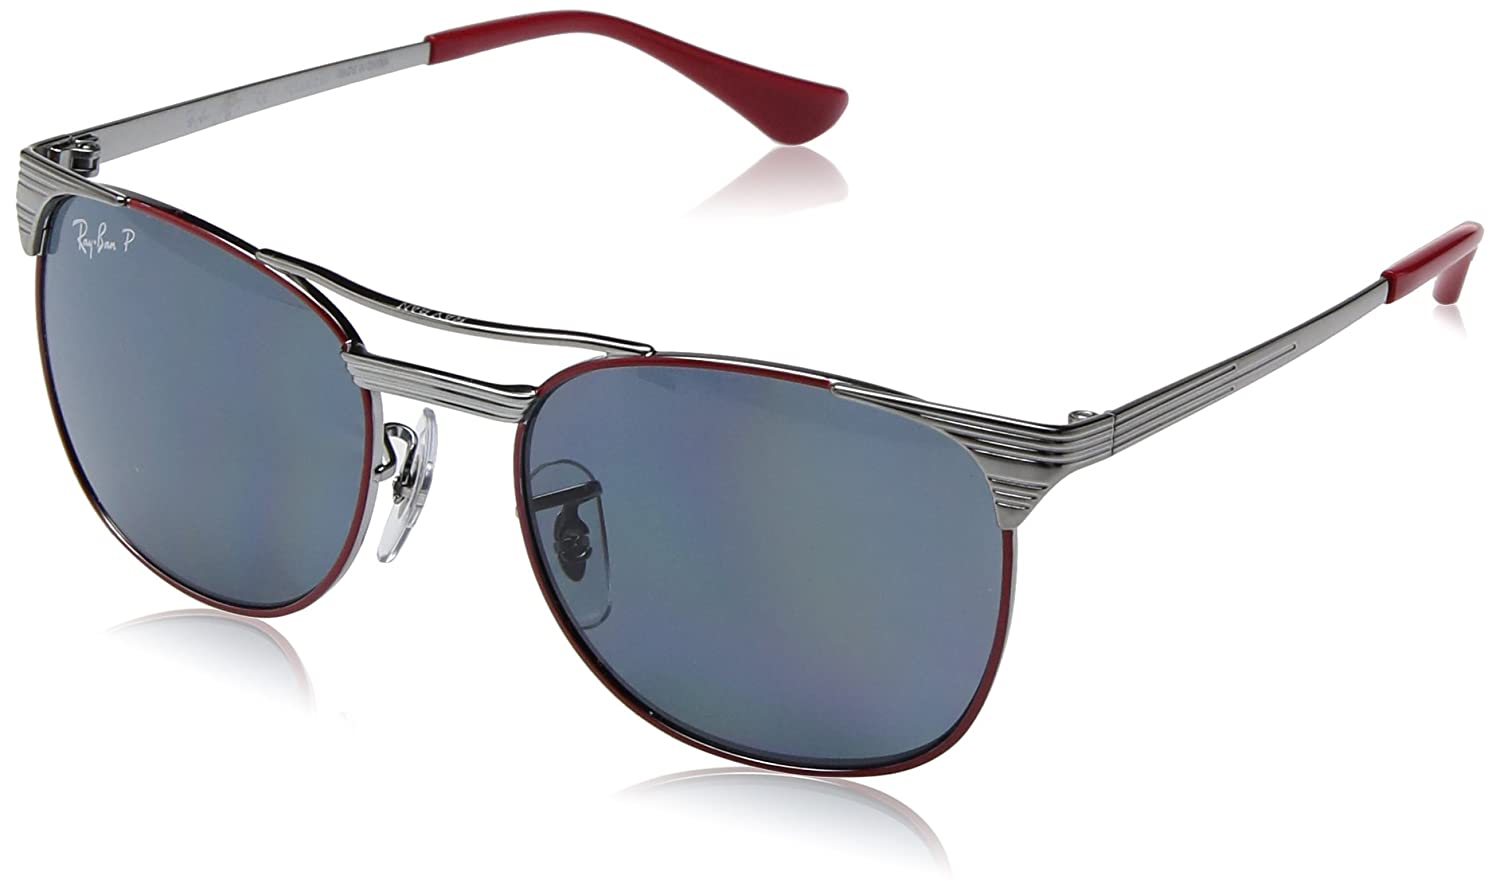 RAY-BAN JUNIOR 9540s Gafas de Sol, Gunmetal Top Red, 49 Unisex-Niño